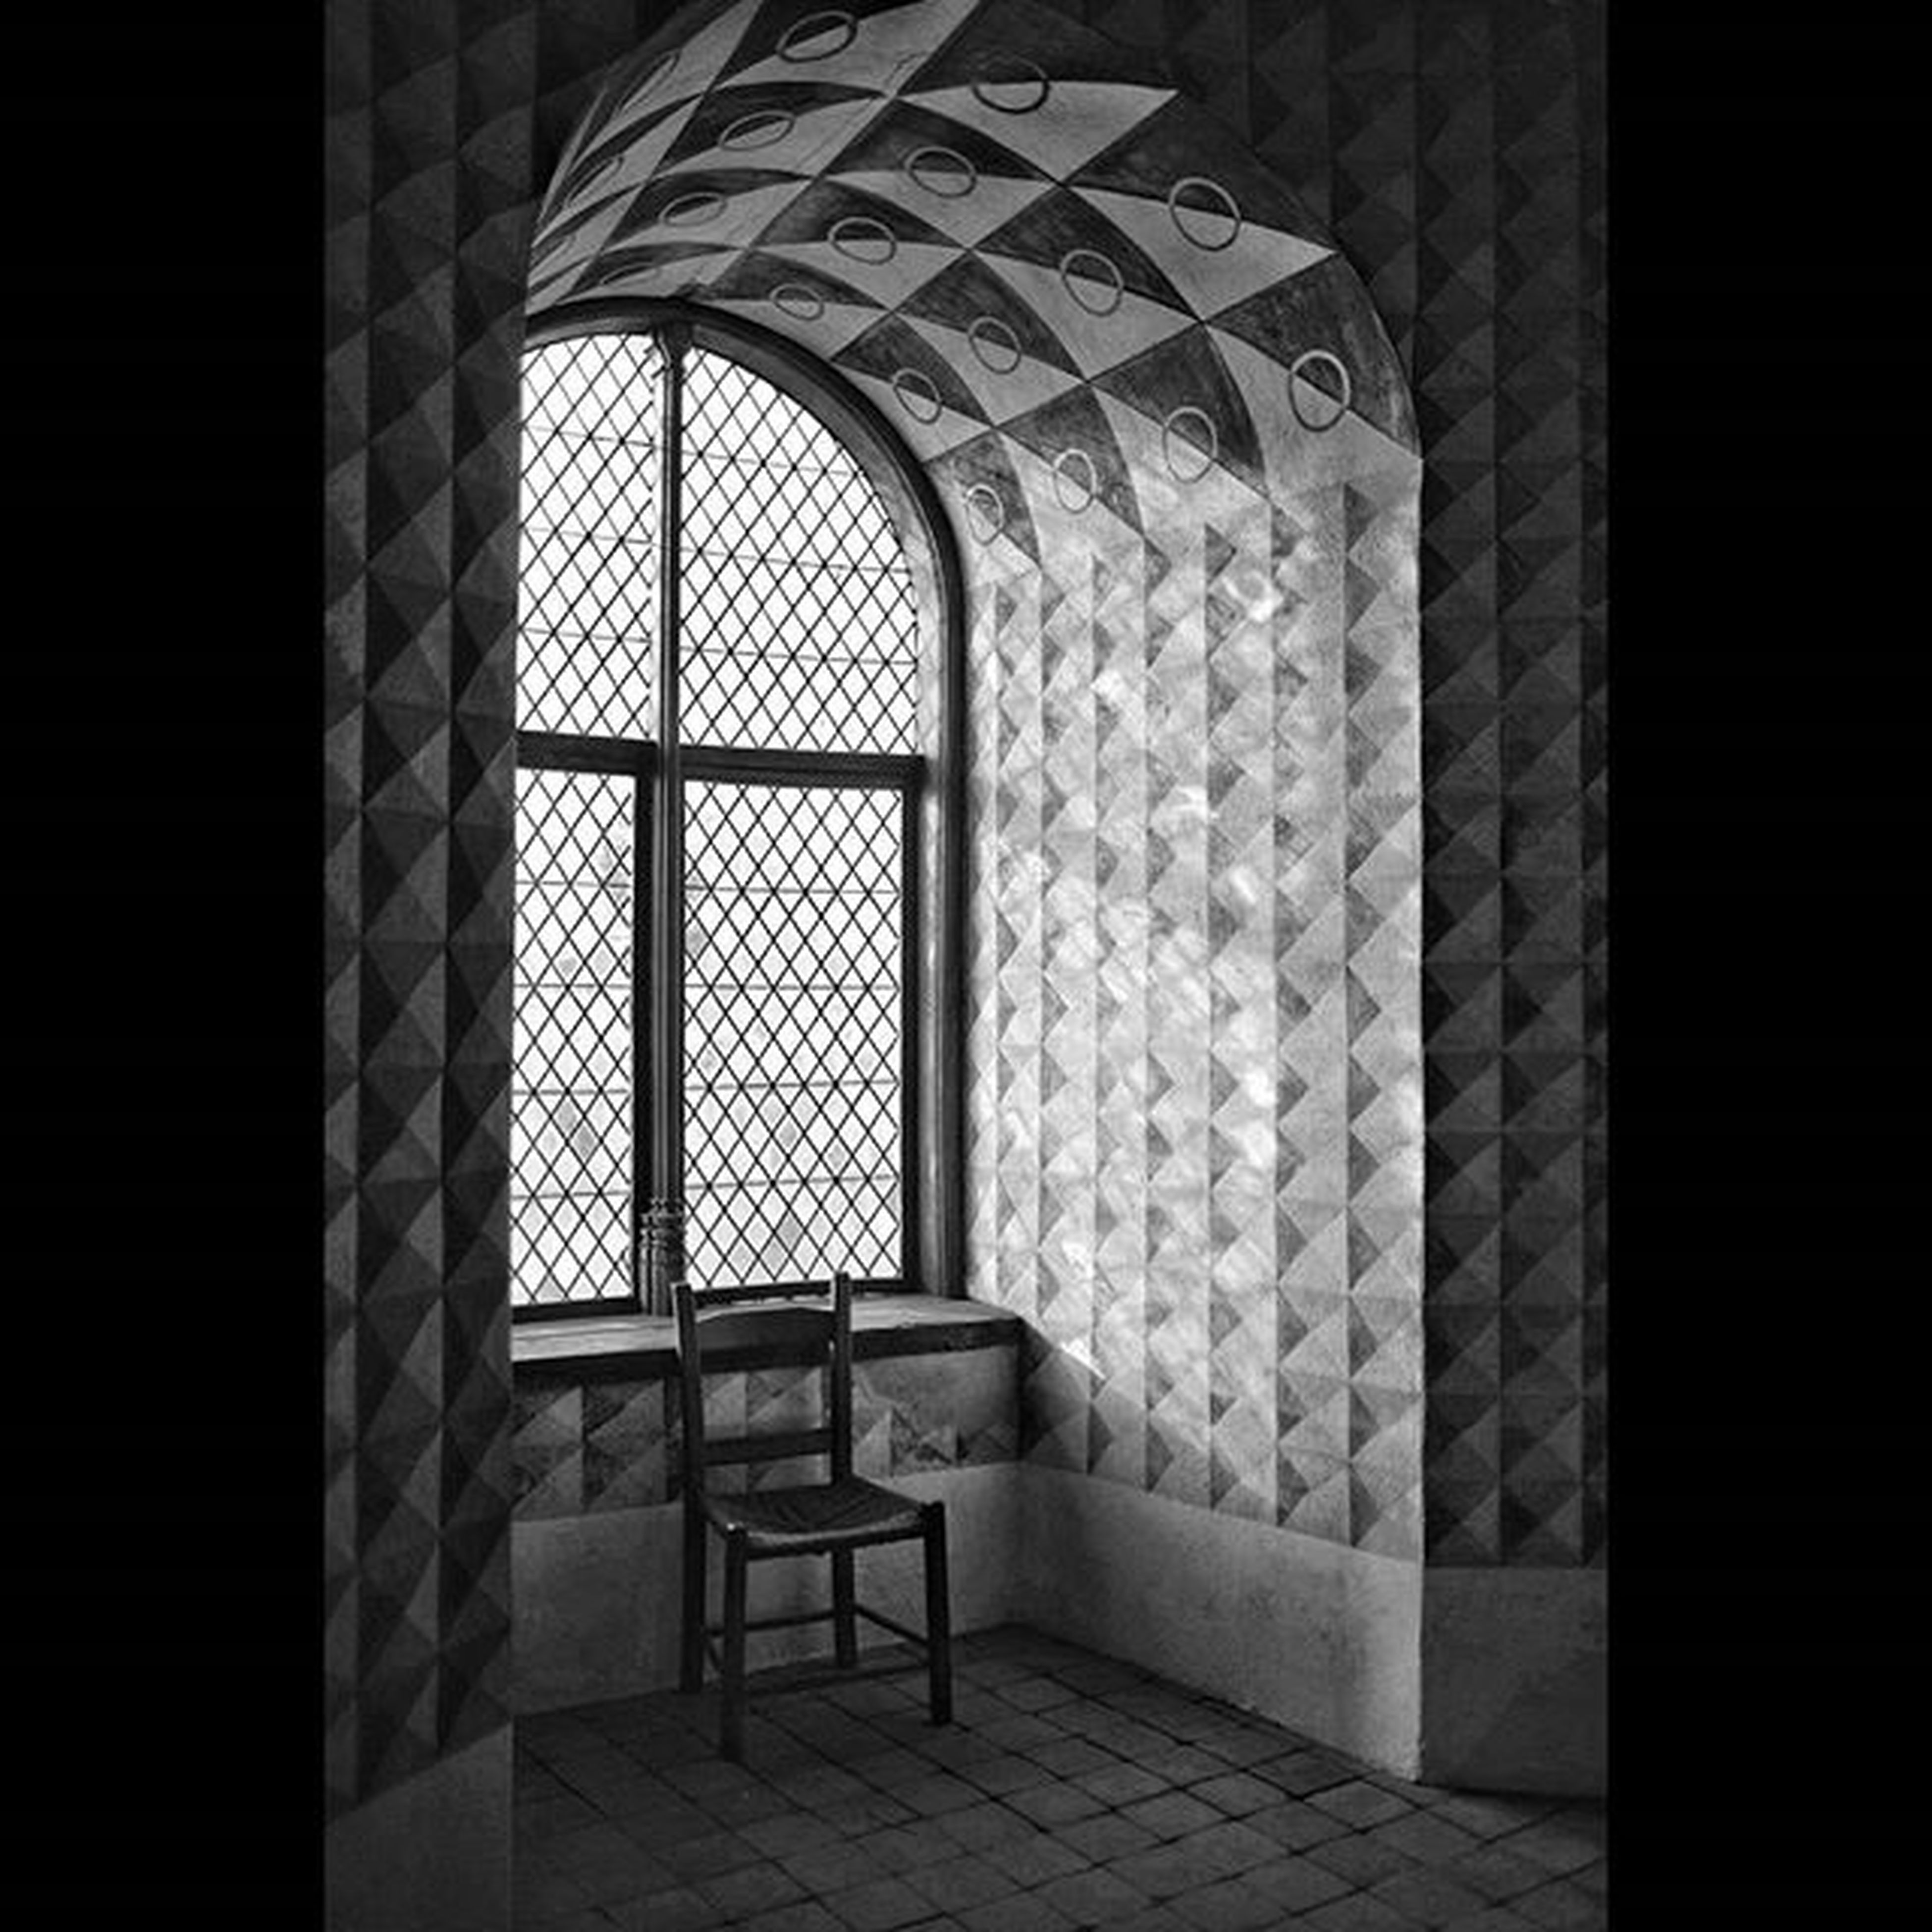 indoors, window, architecture, built structure, absence, empty, door, entrance, sunlight, arch, home interior, closed, dark, interior, open, no people, doorway, day, wall - building feature, house